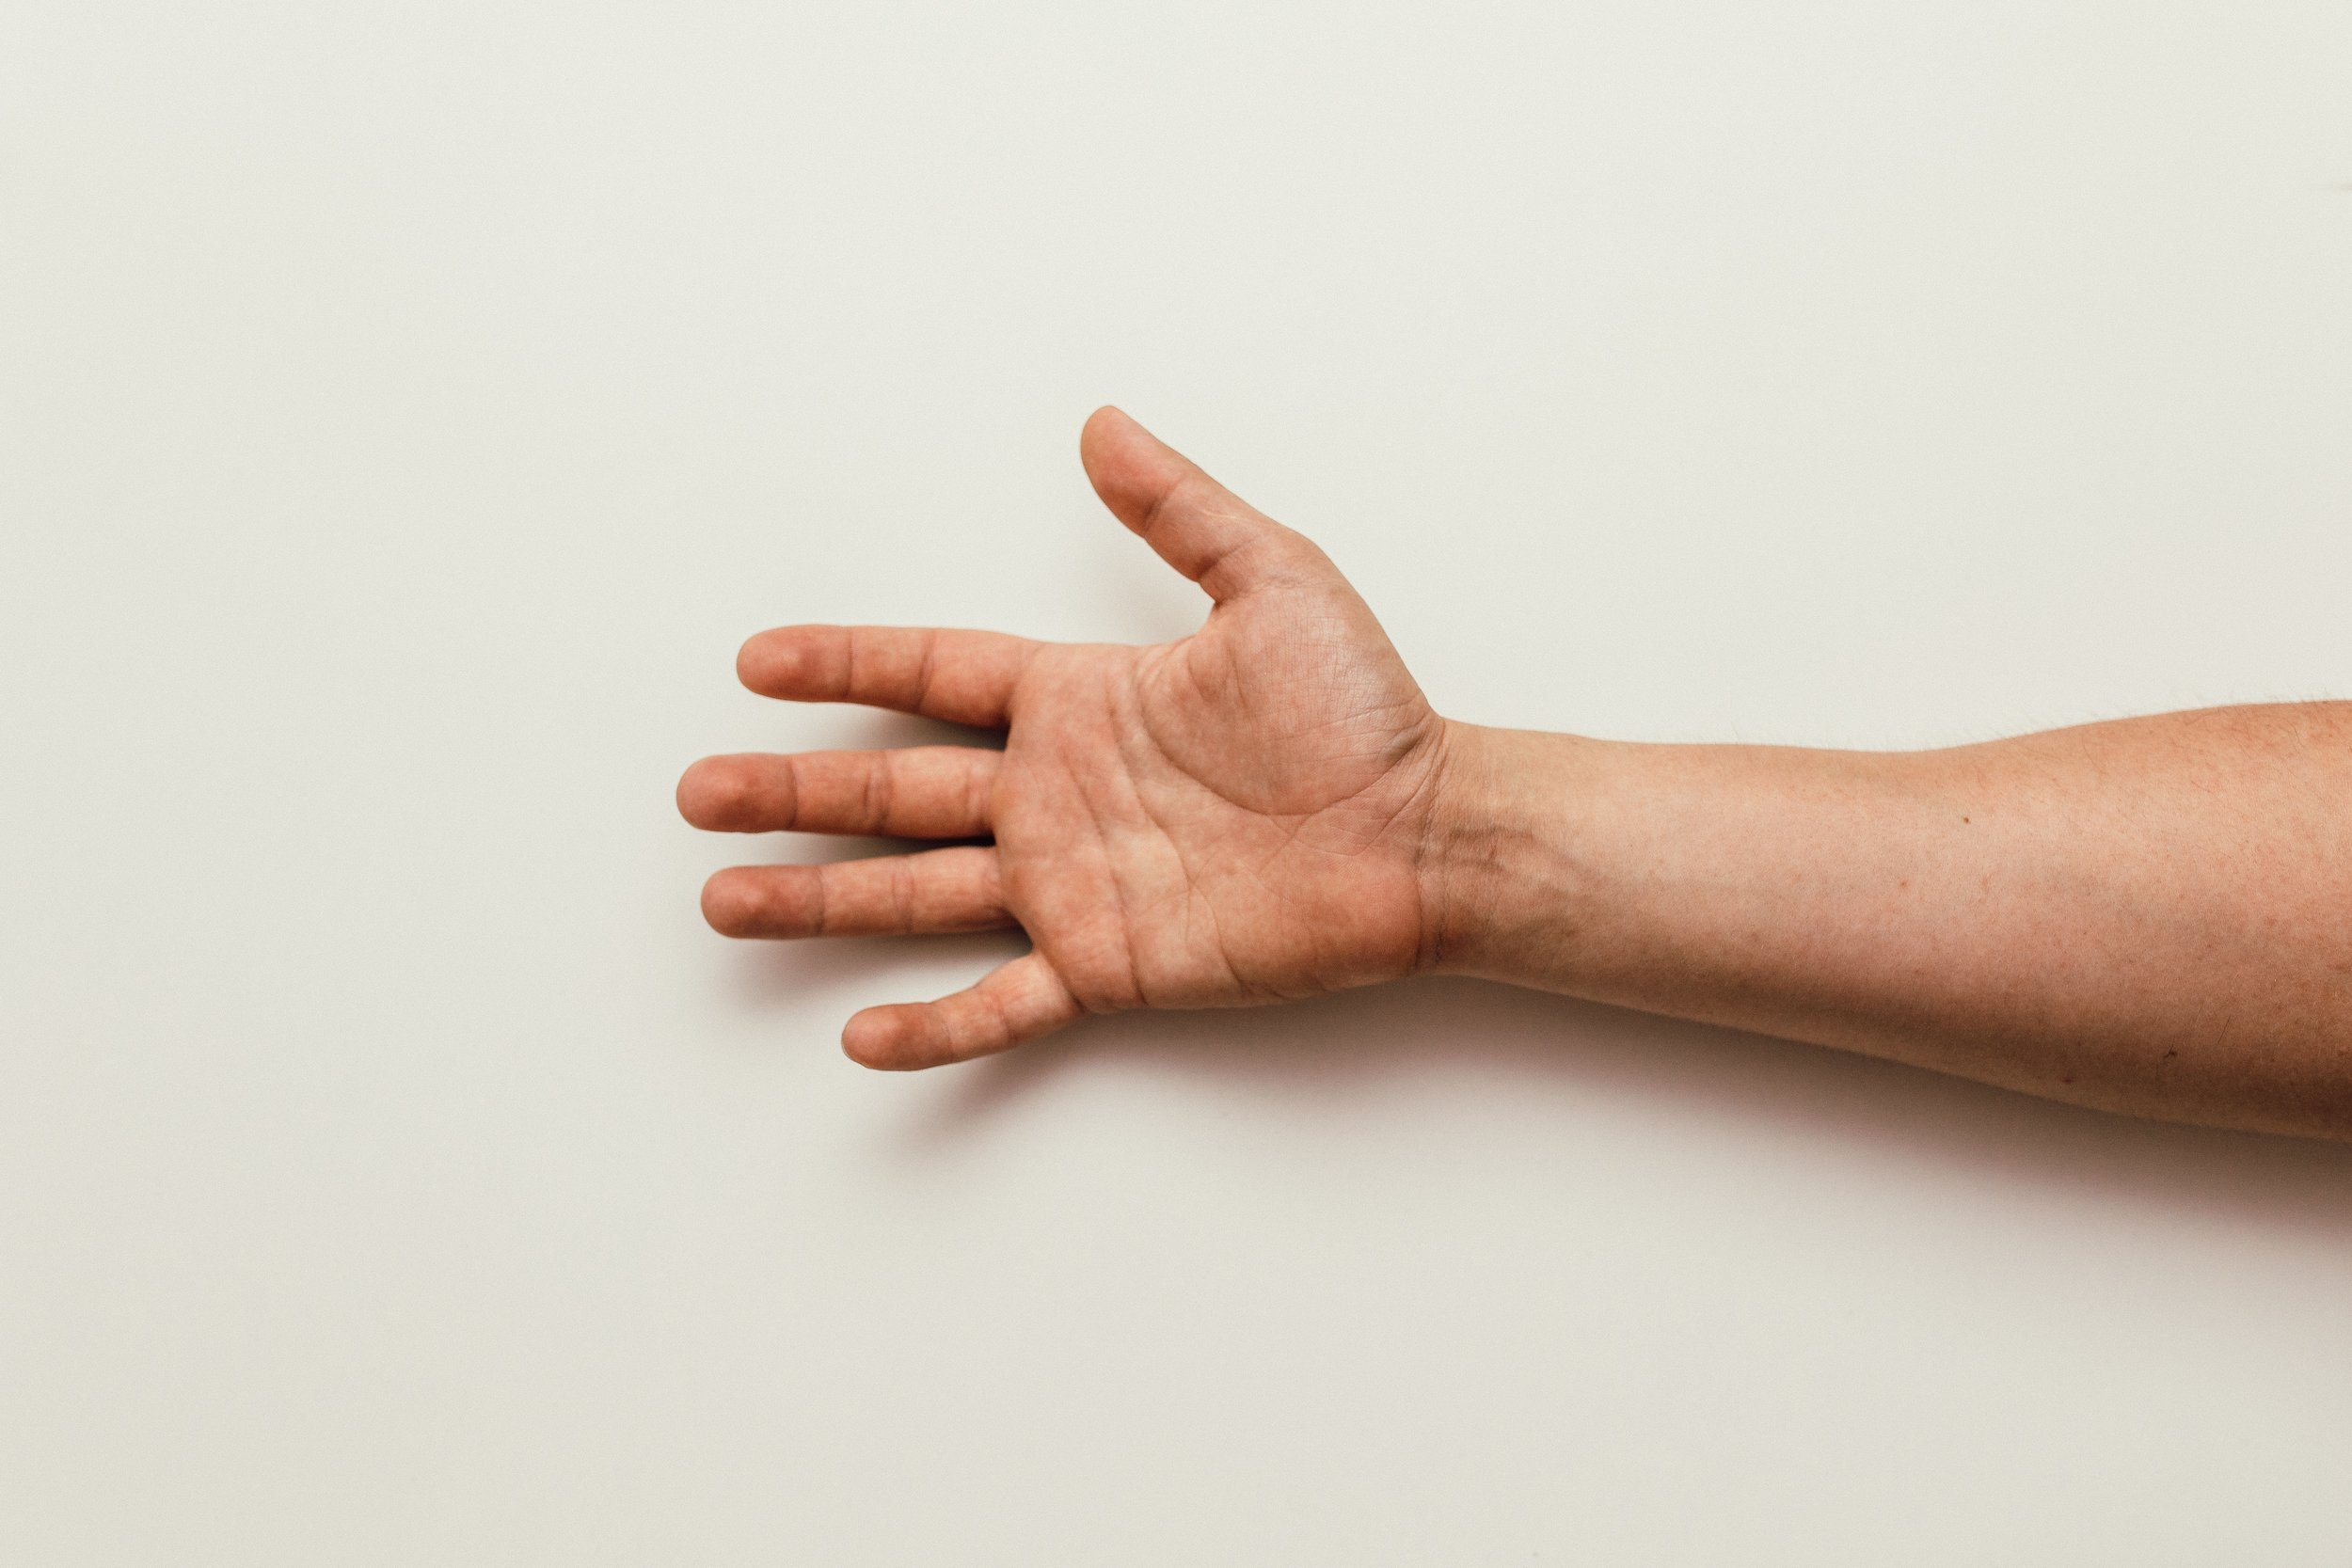 carpal-tunnel-syndrome-treatment-surgery